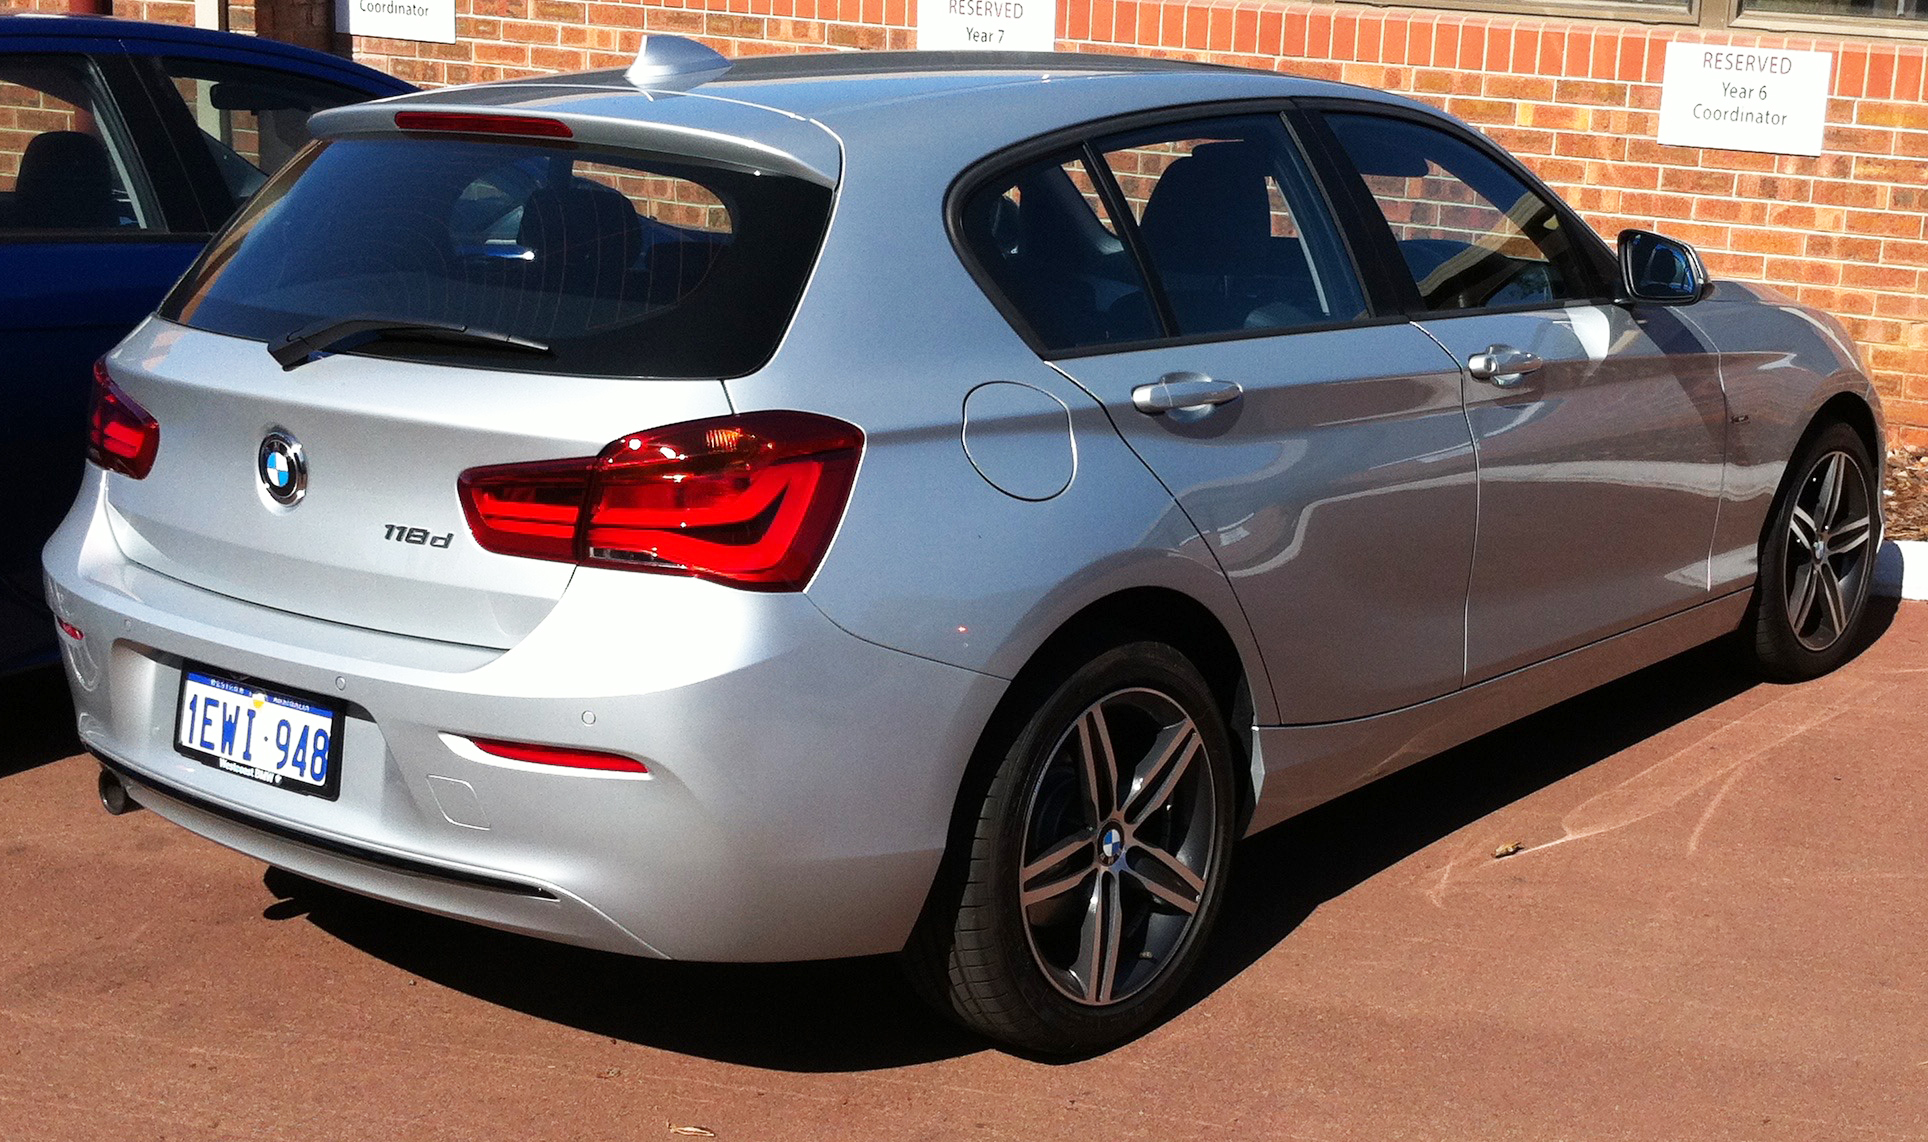 bmw 1er hatchback f21 118i 170 hp automatic. Black Bedroom Furniture Sets. Home Design Ideas